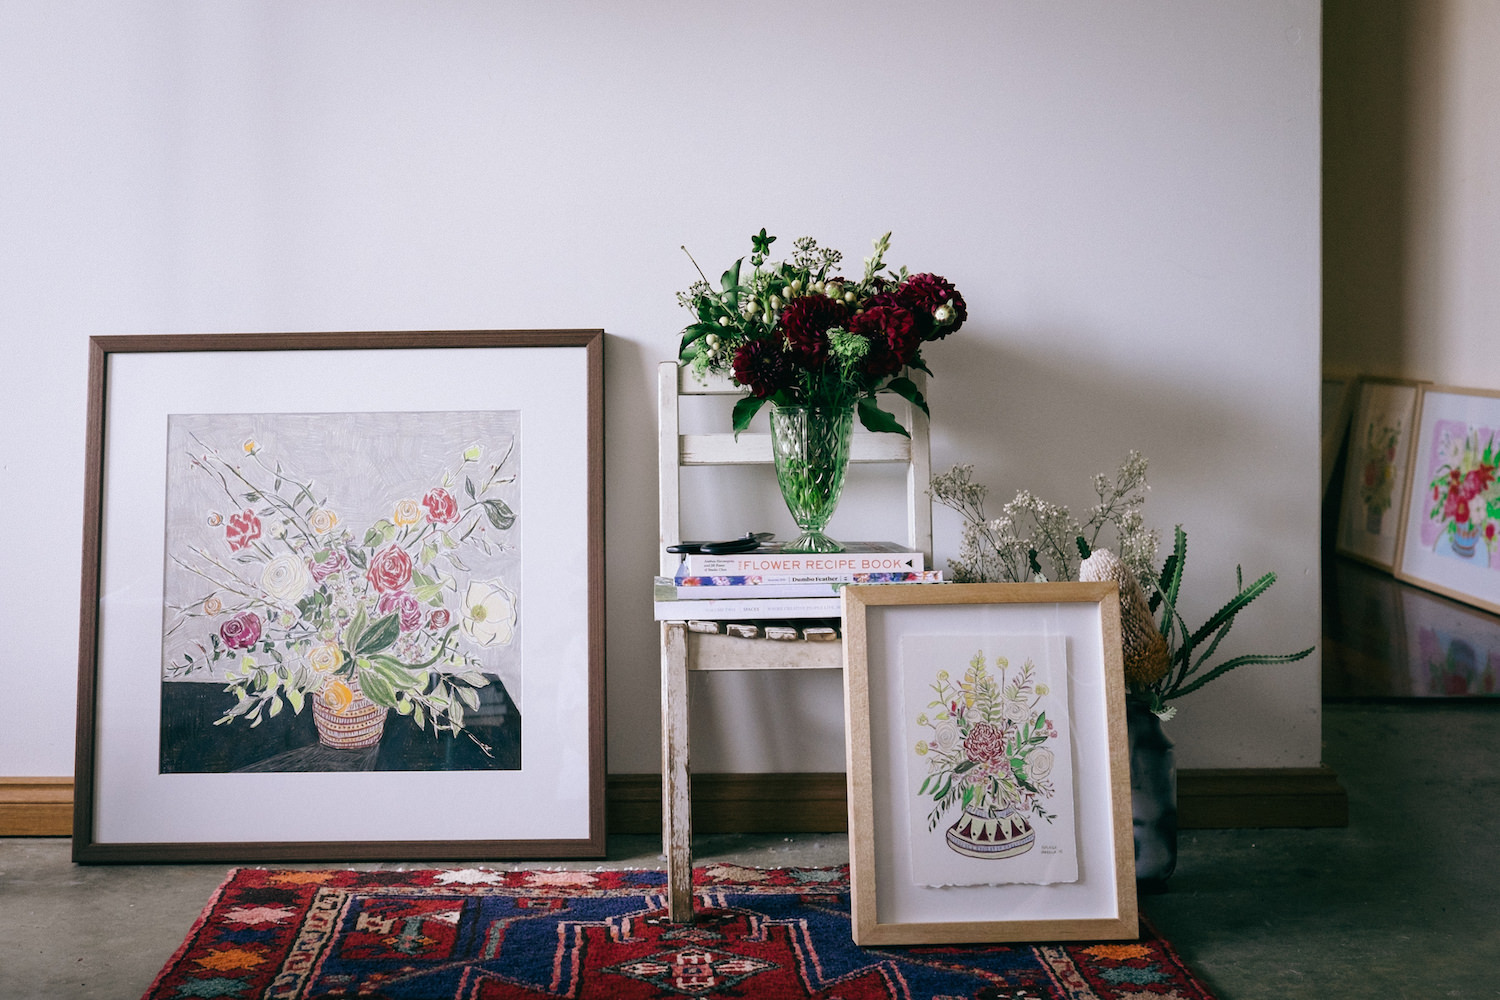 Creative Business Photography Ashleigh Perrella Artist Florist 3